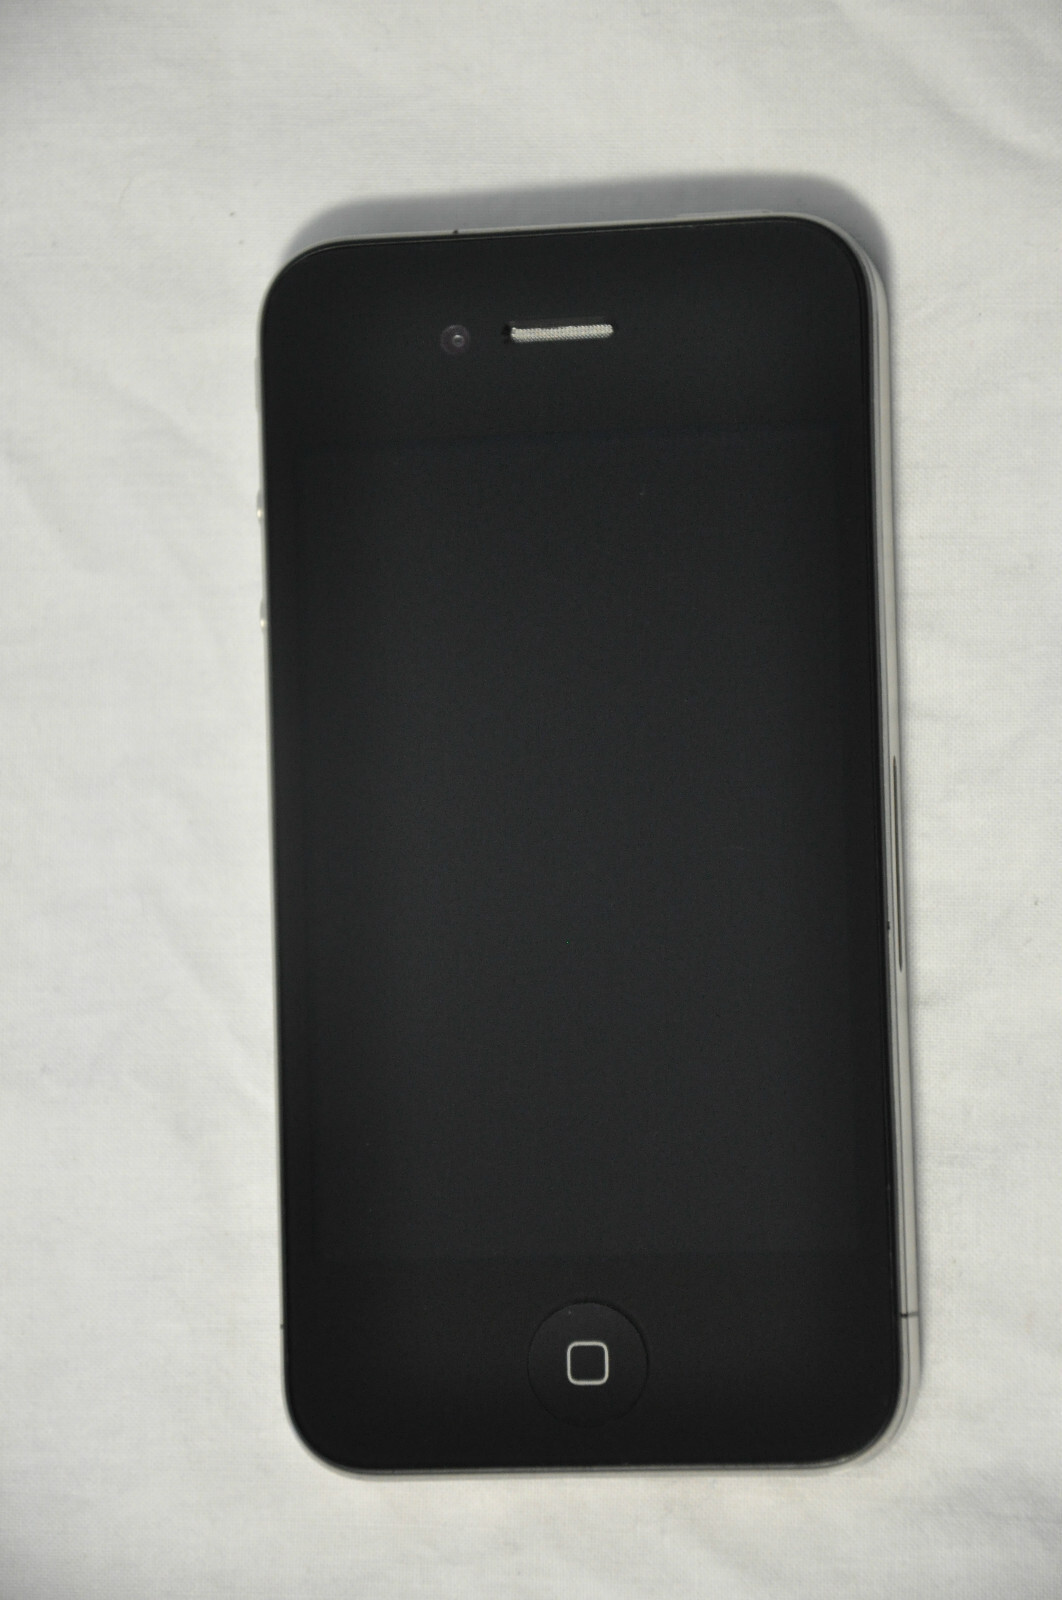 iphone 4s for sale ebay iphone 4 prototype hits ebay yours for 10 000 17350